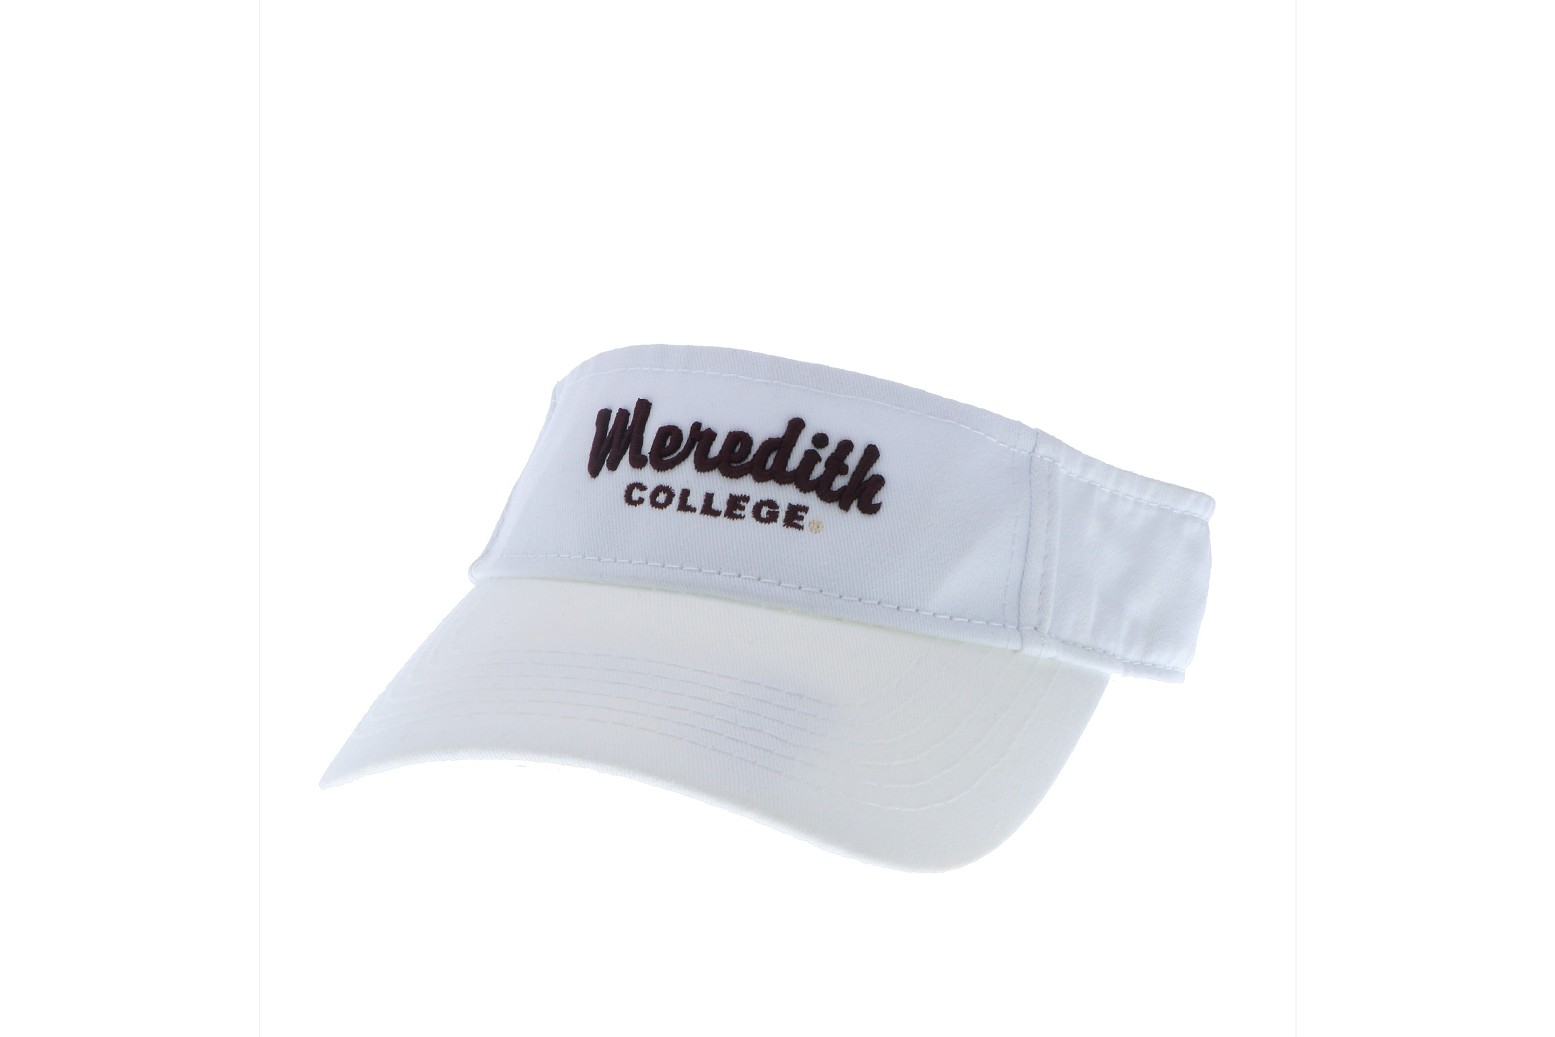 Image for the Relaxed Twill Visor Legacy Meredith College product